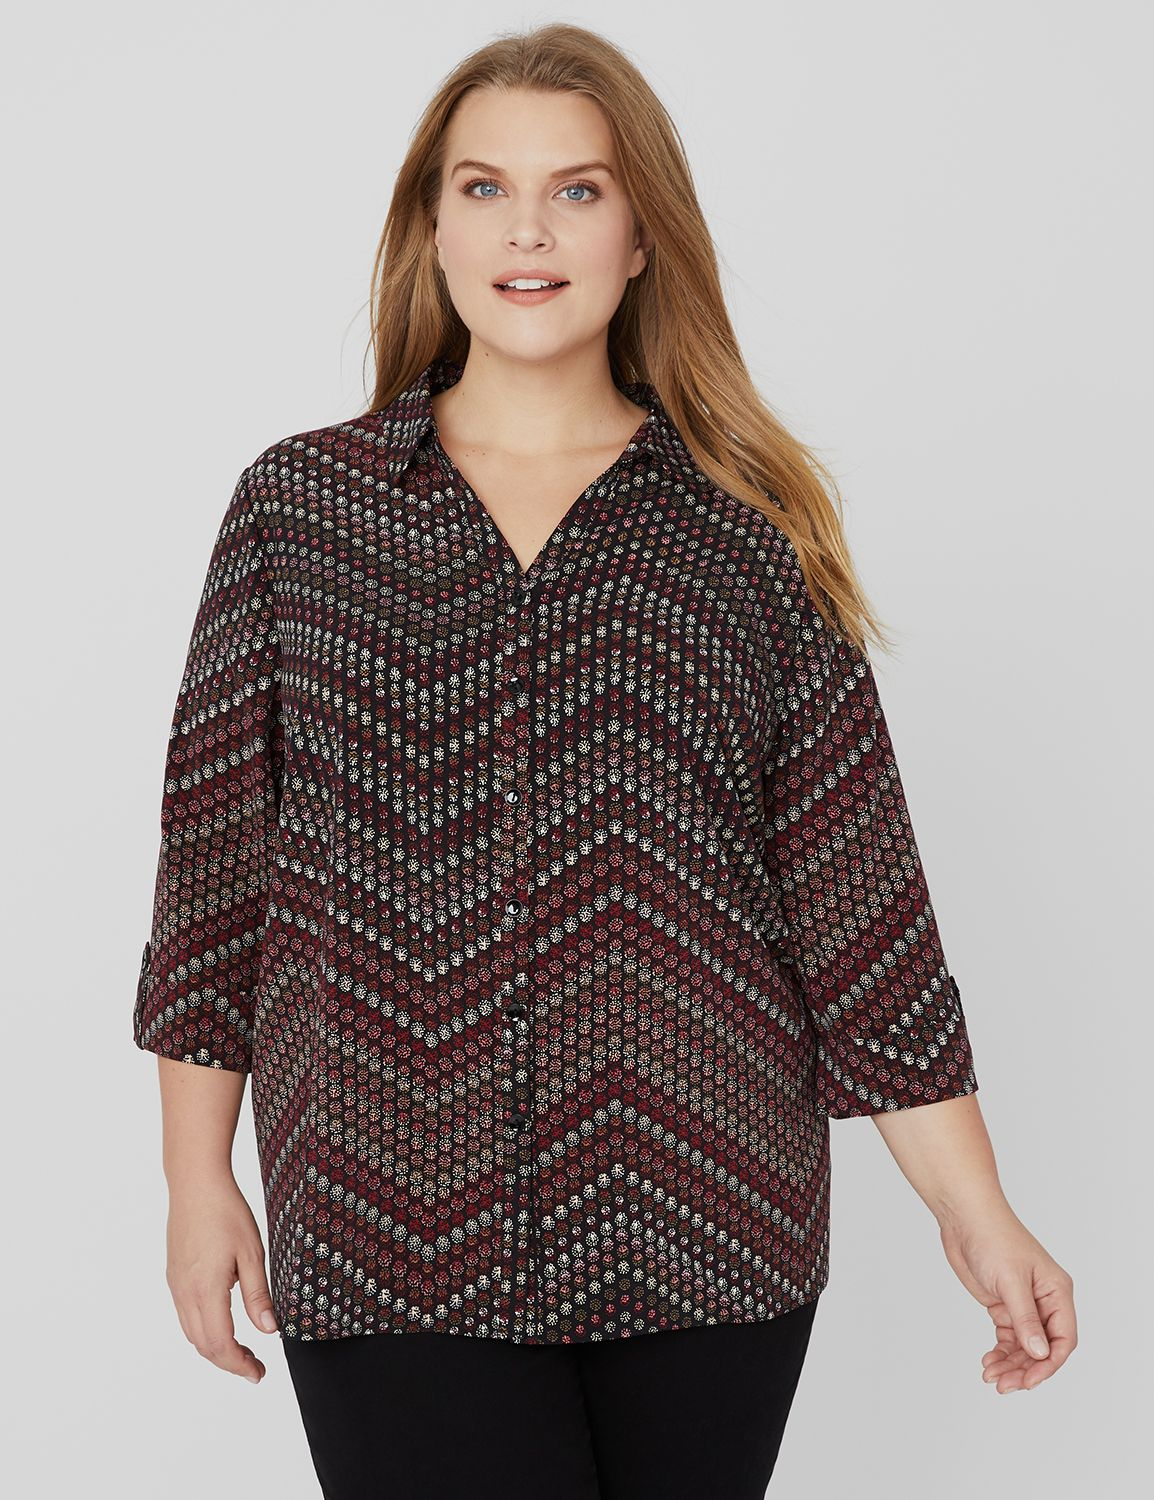 Allover Print Buttonfront 3/4 Slv Collared CDC Blouse MP-300094041